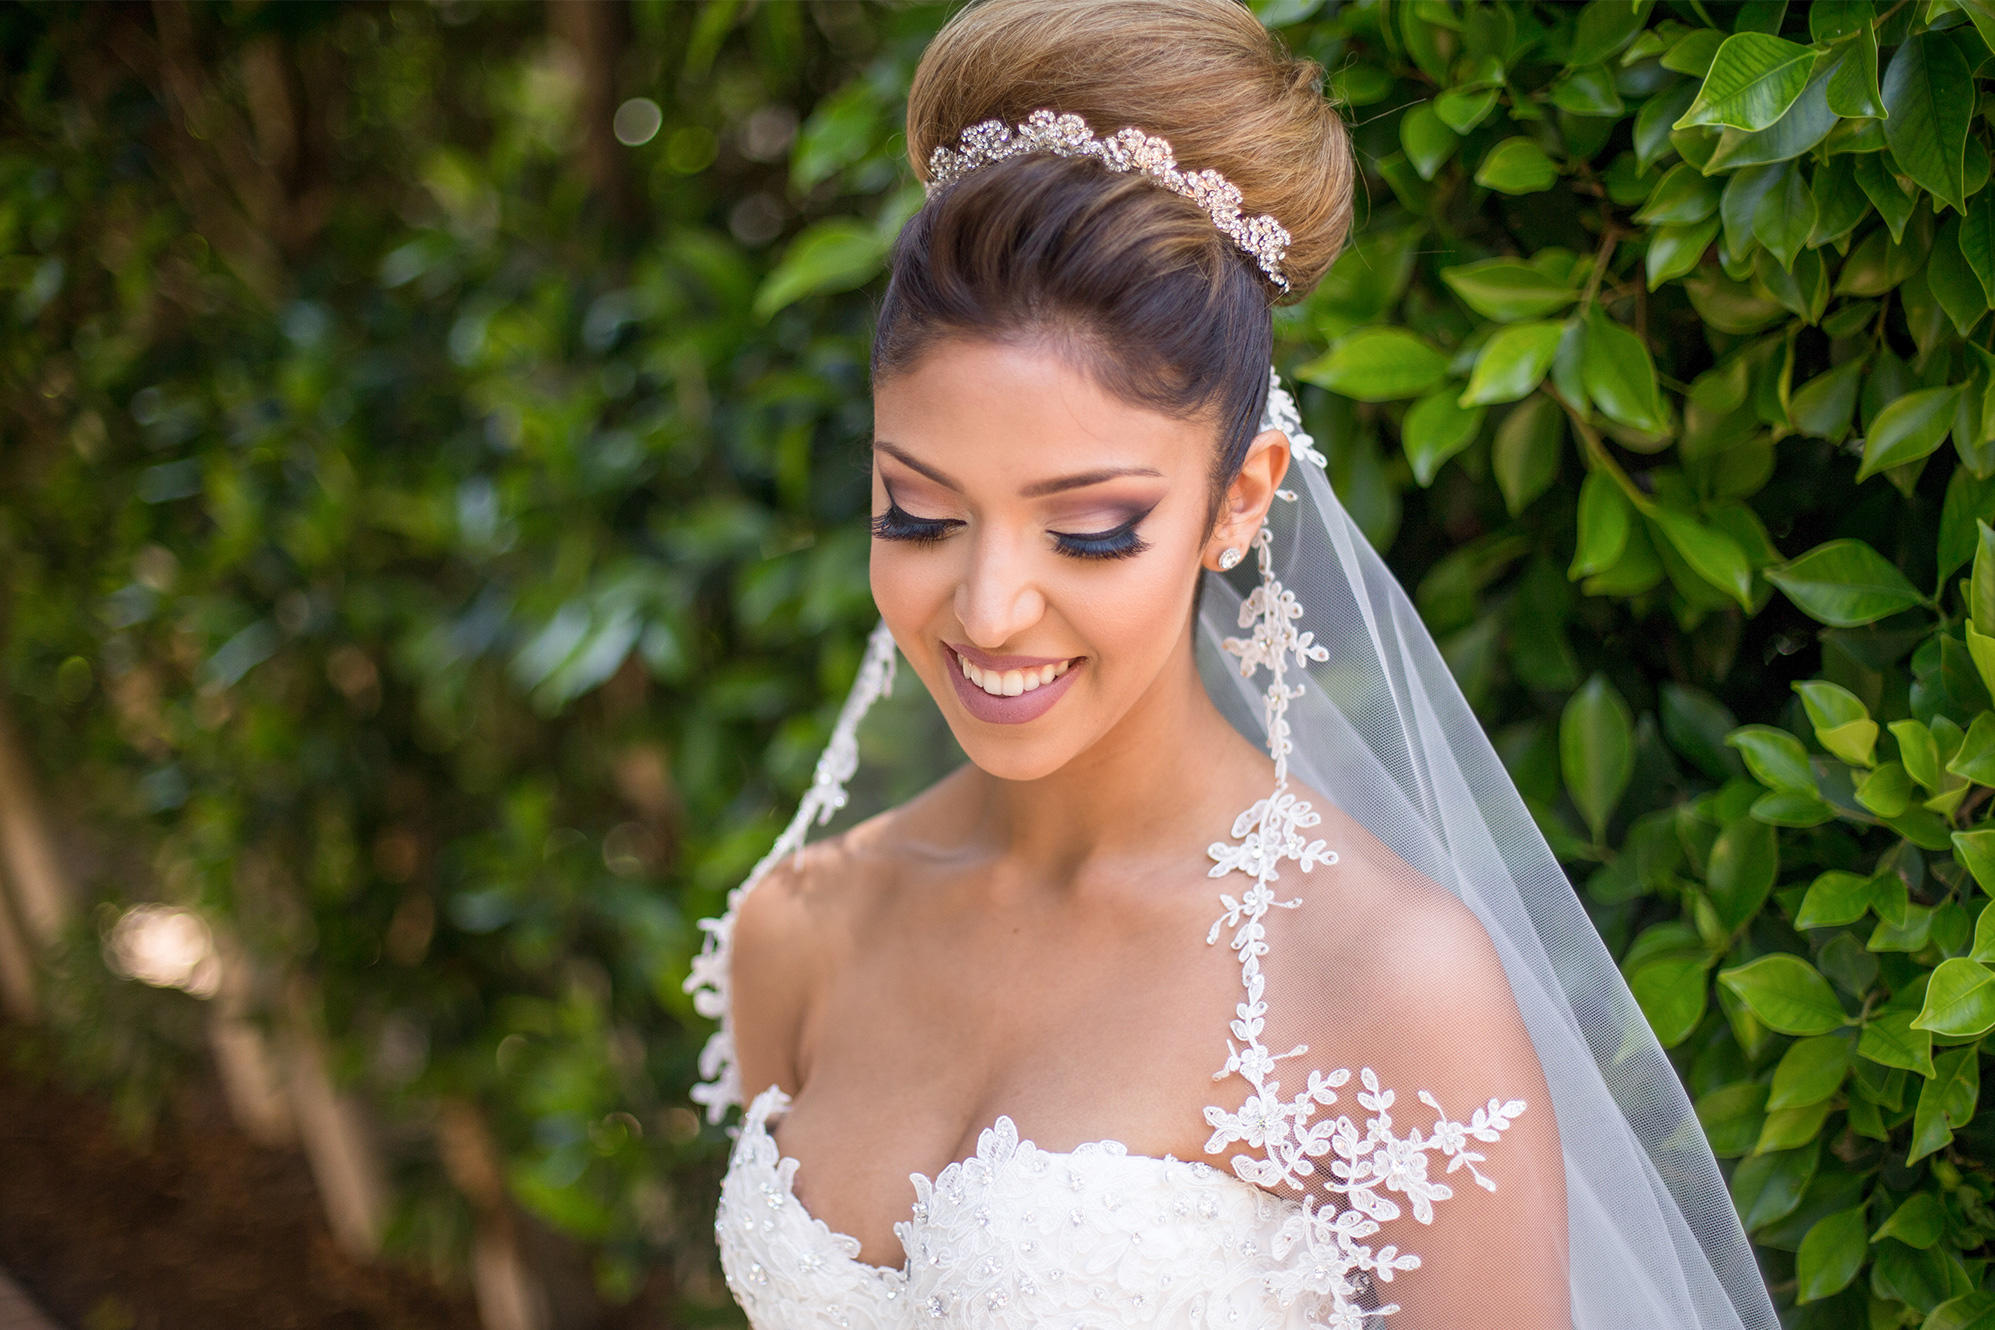 Persias big day say yes to the dress tlc 07 syttd the big day 303 ombrellifo Images